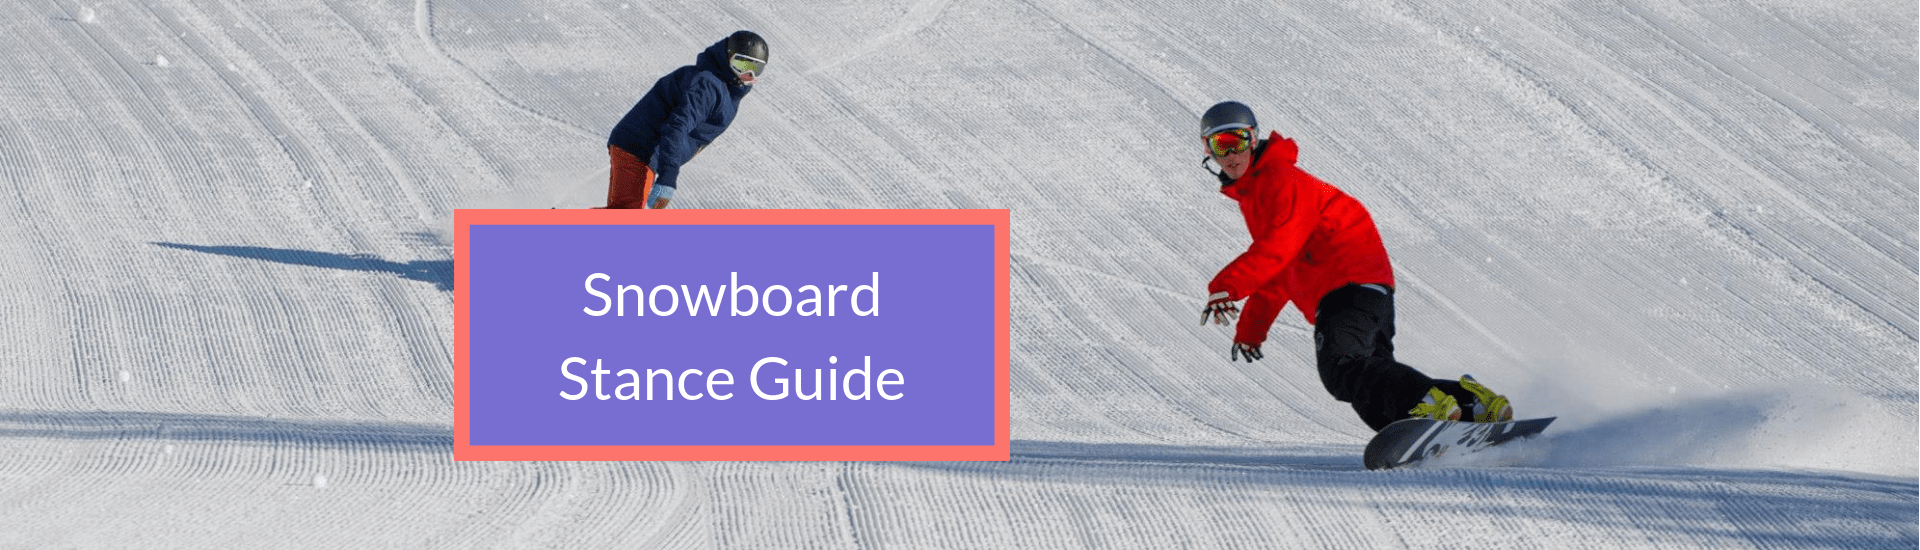 snowboard stance guide watch and ride online snowboard. Black Bedroom Furniture Sets. Home Design Ideas